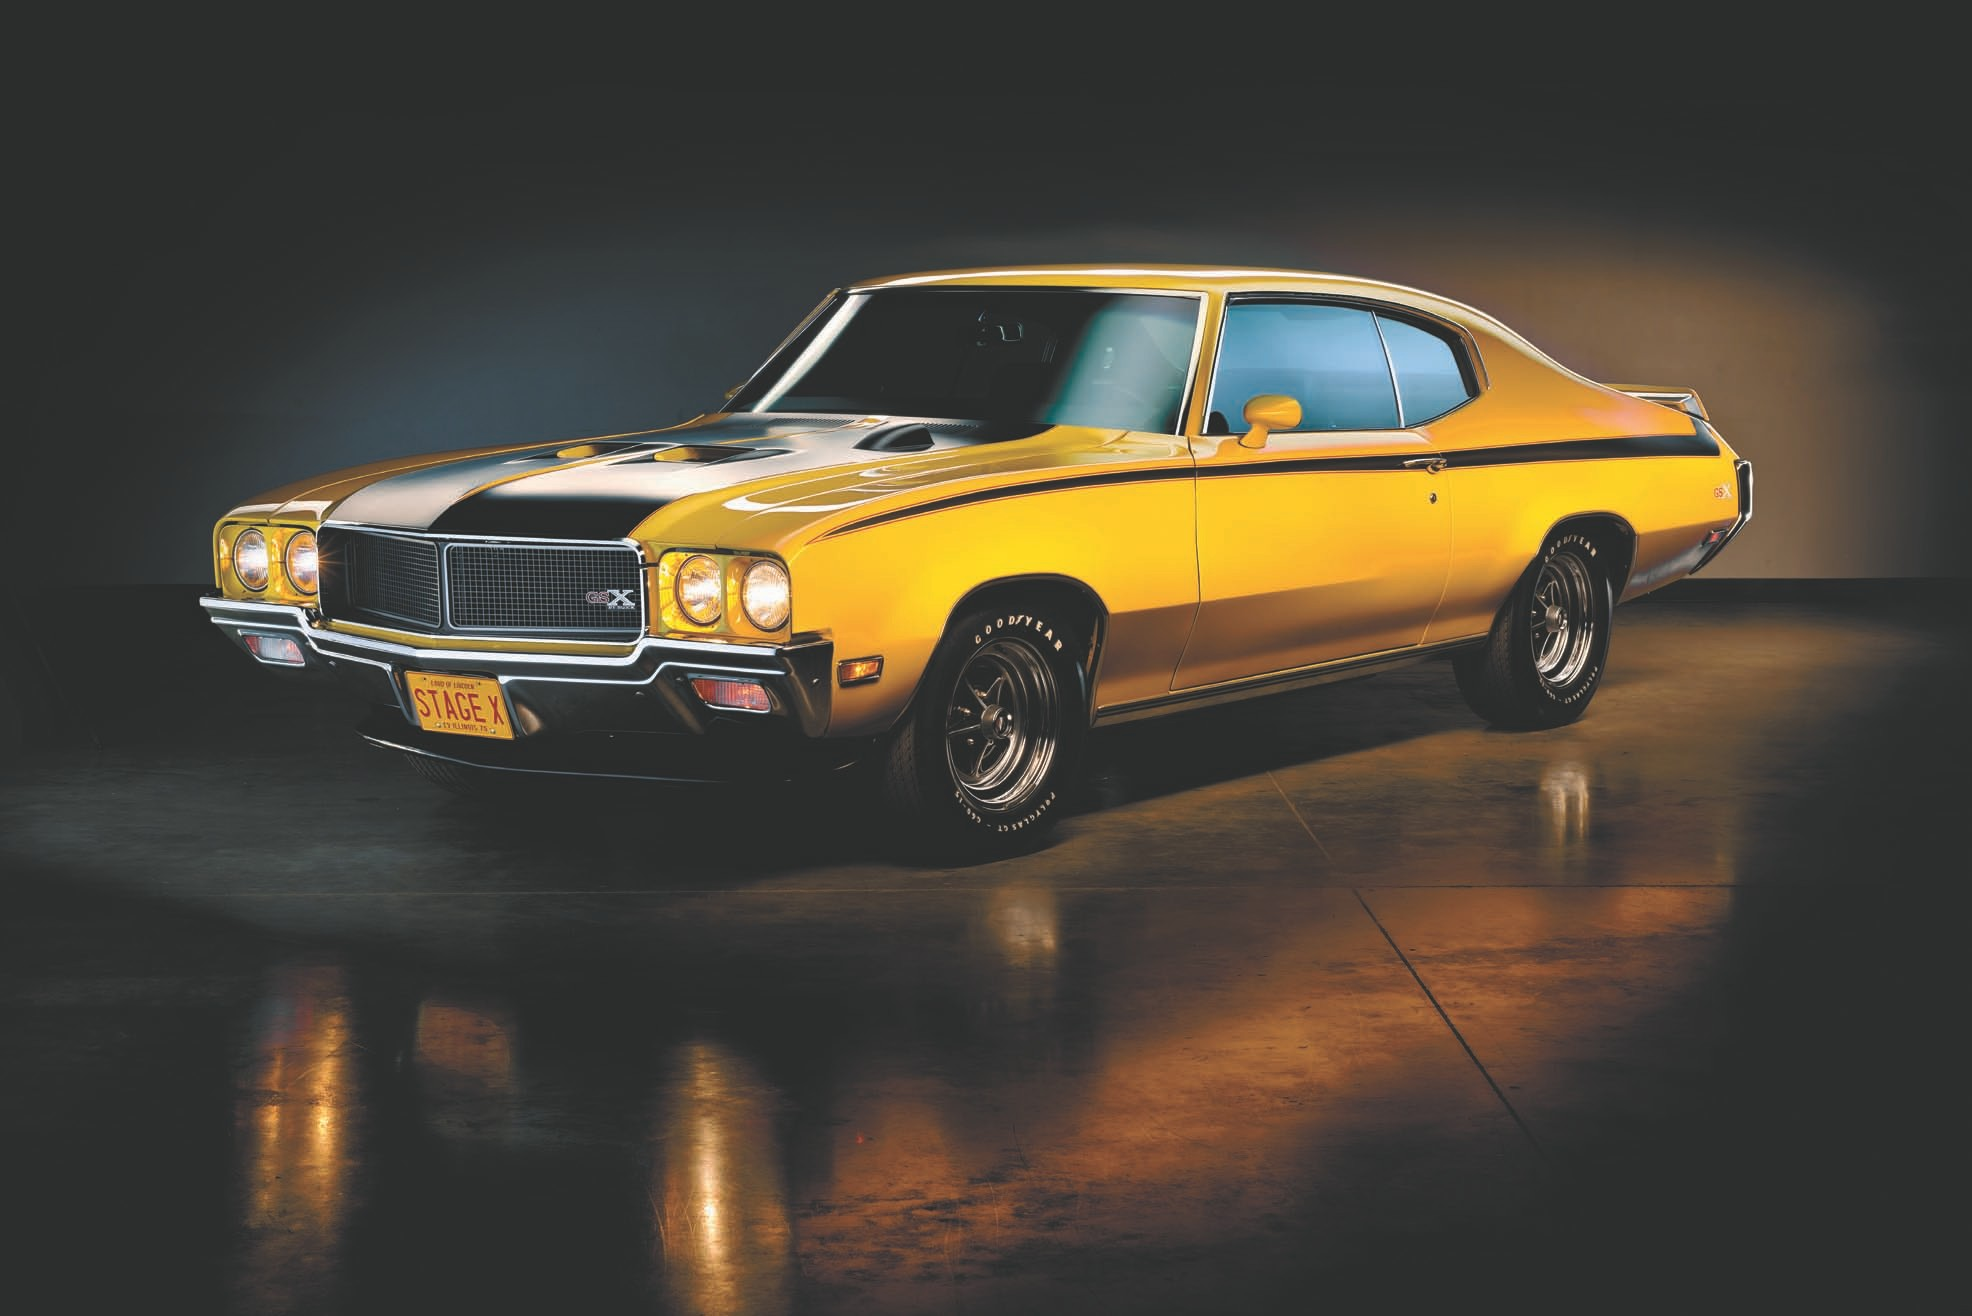 The 1970 Buick GSX.